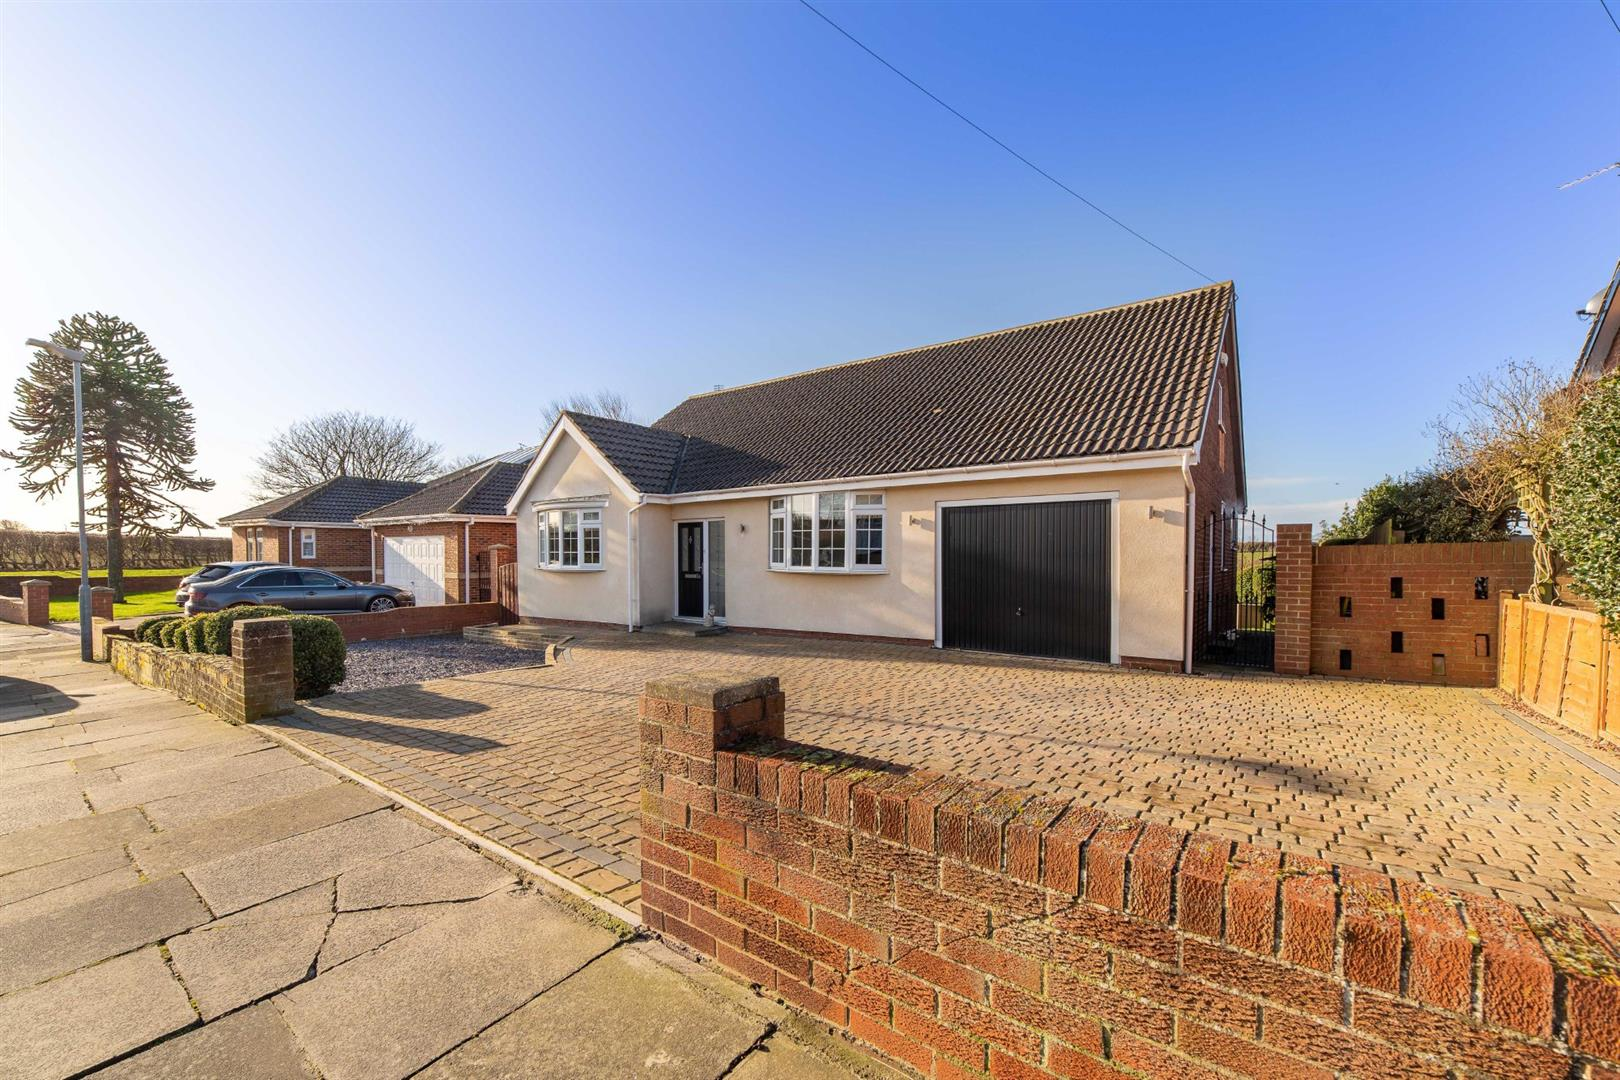 2 bed detached bungalow for sale in Whitley Bay, NE26 4BN, NE26